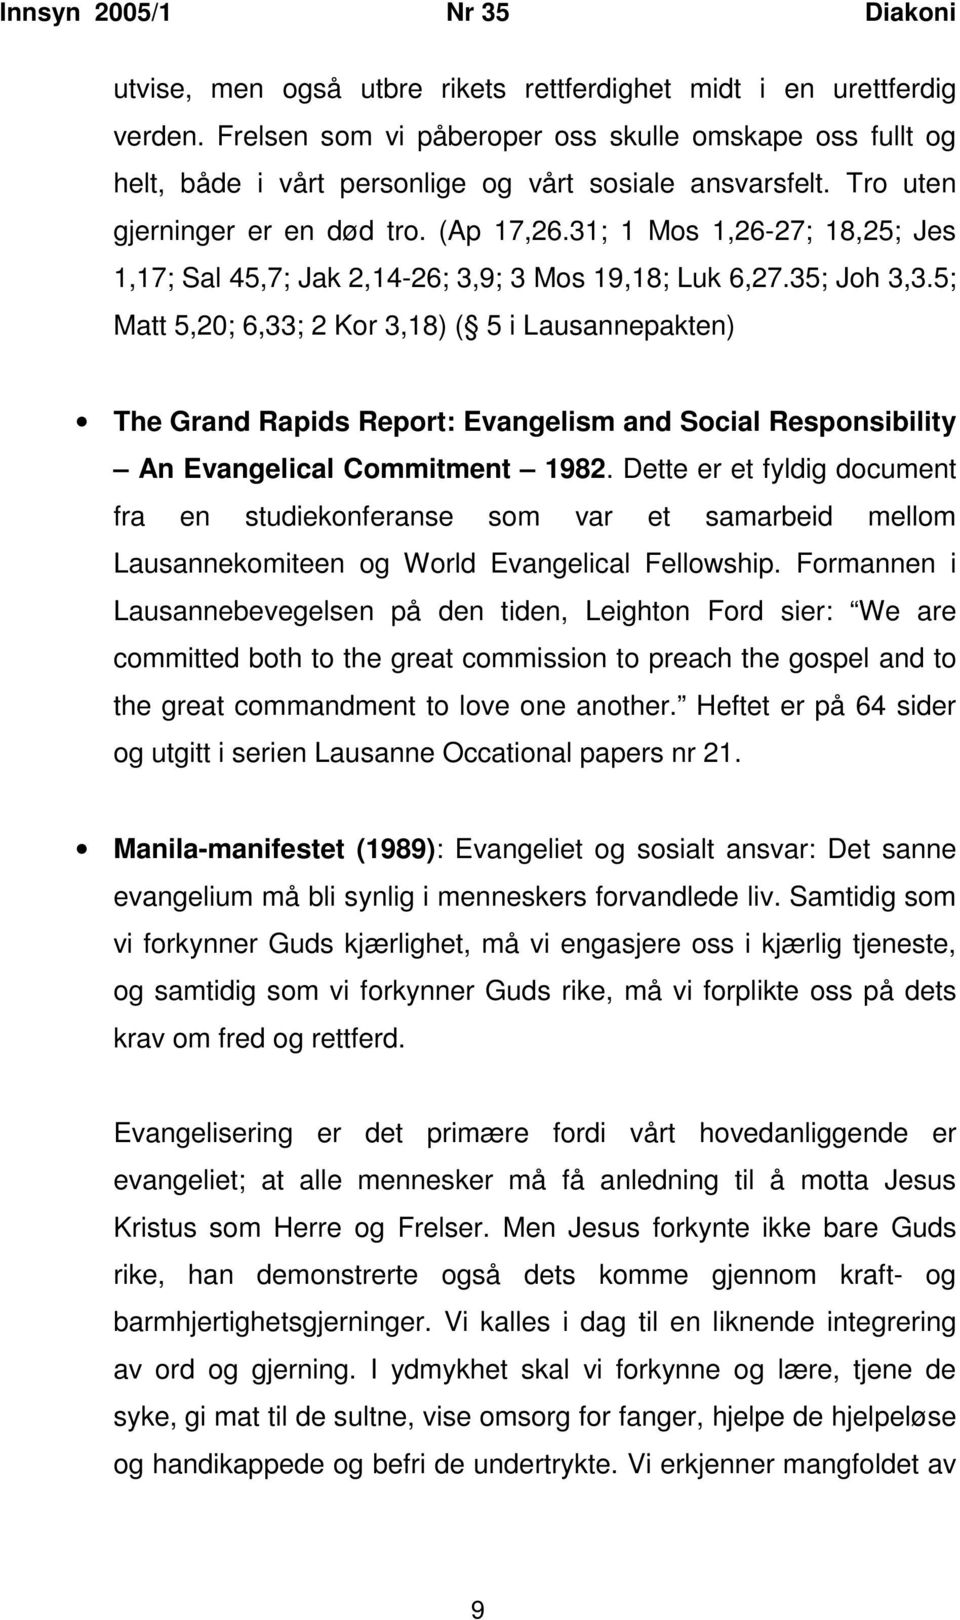 5; Matt 5,20; 6,33; 2 Kor 3,18) ( 5 i Lausannepakten) The Grand Rapids Report: Evangelism and Social Responsibility An Evangelical Commitment 1982.